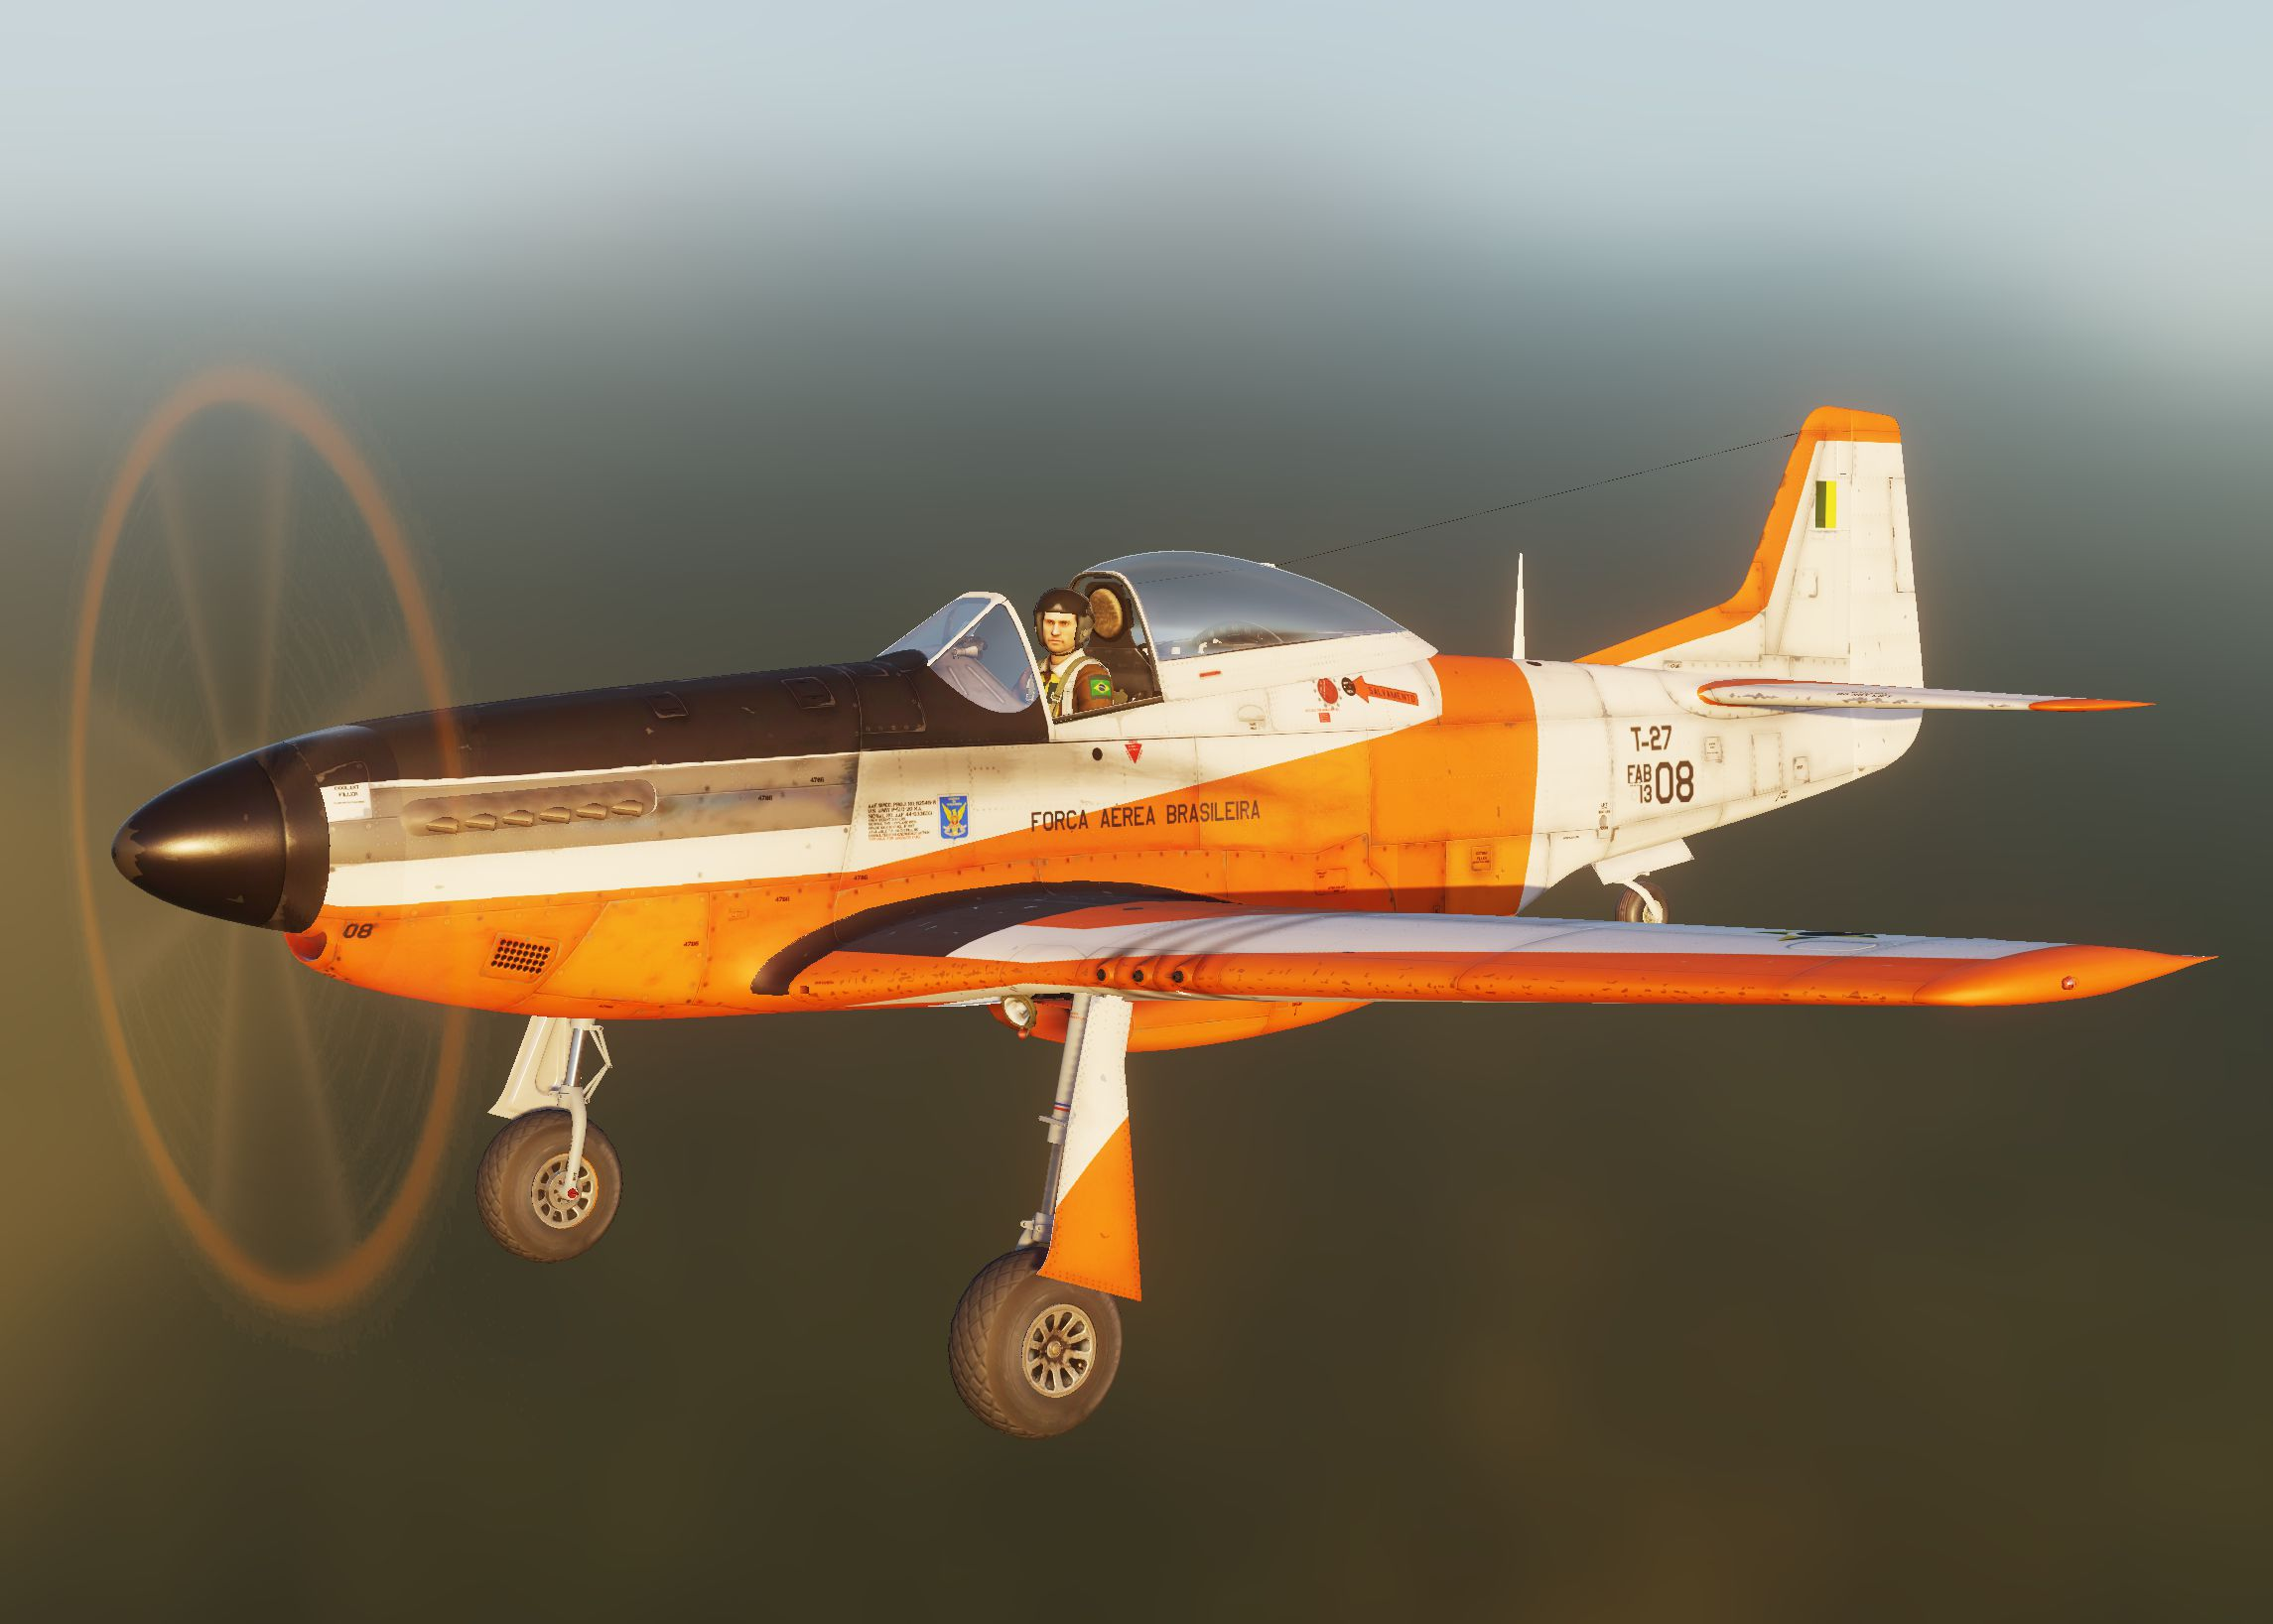 T-27 Tucano Brazilian Air Force Academy (sn 1308).